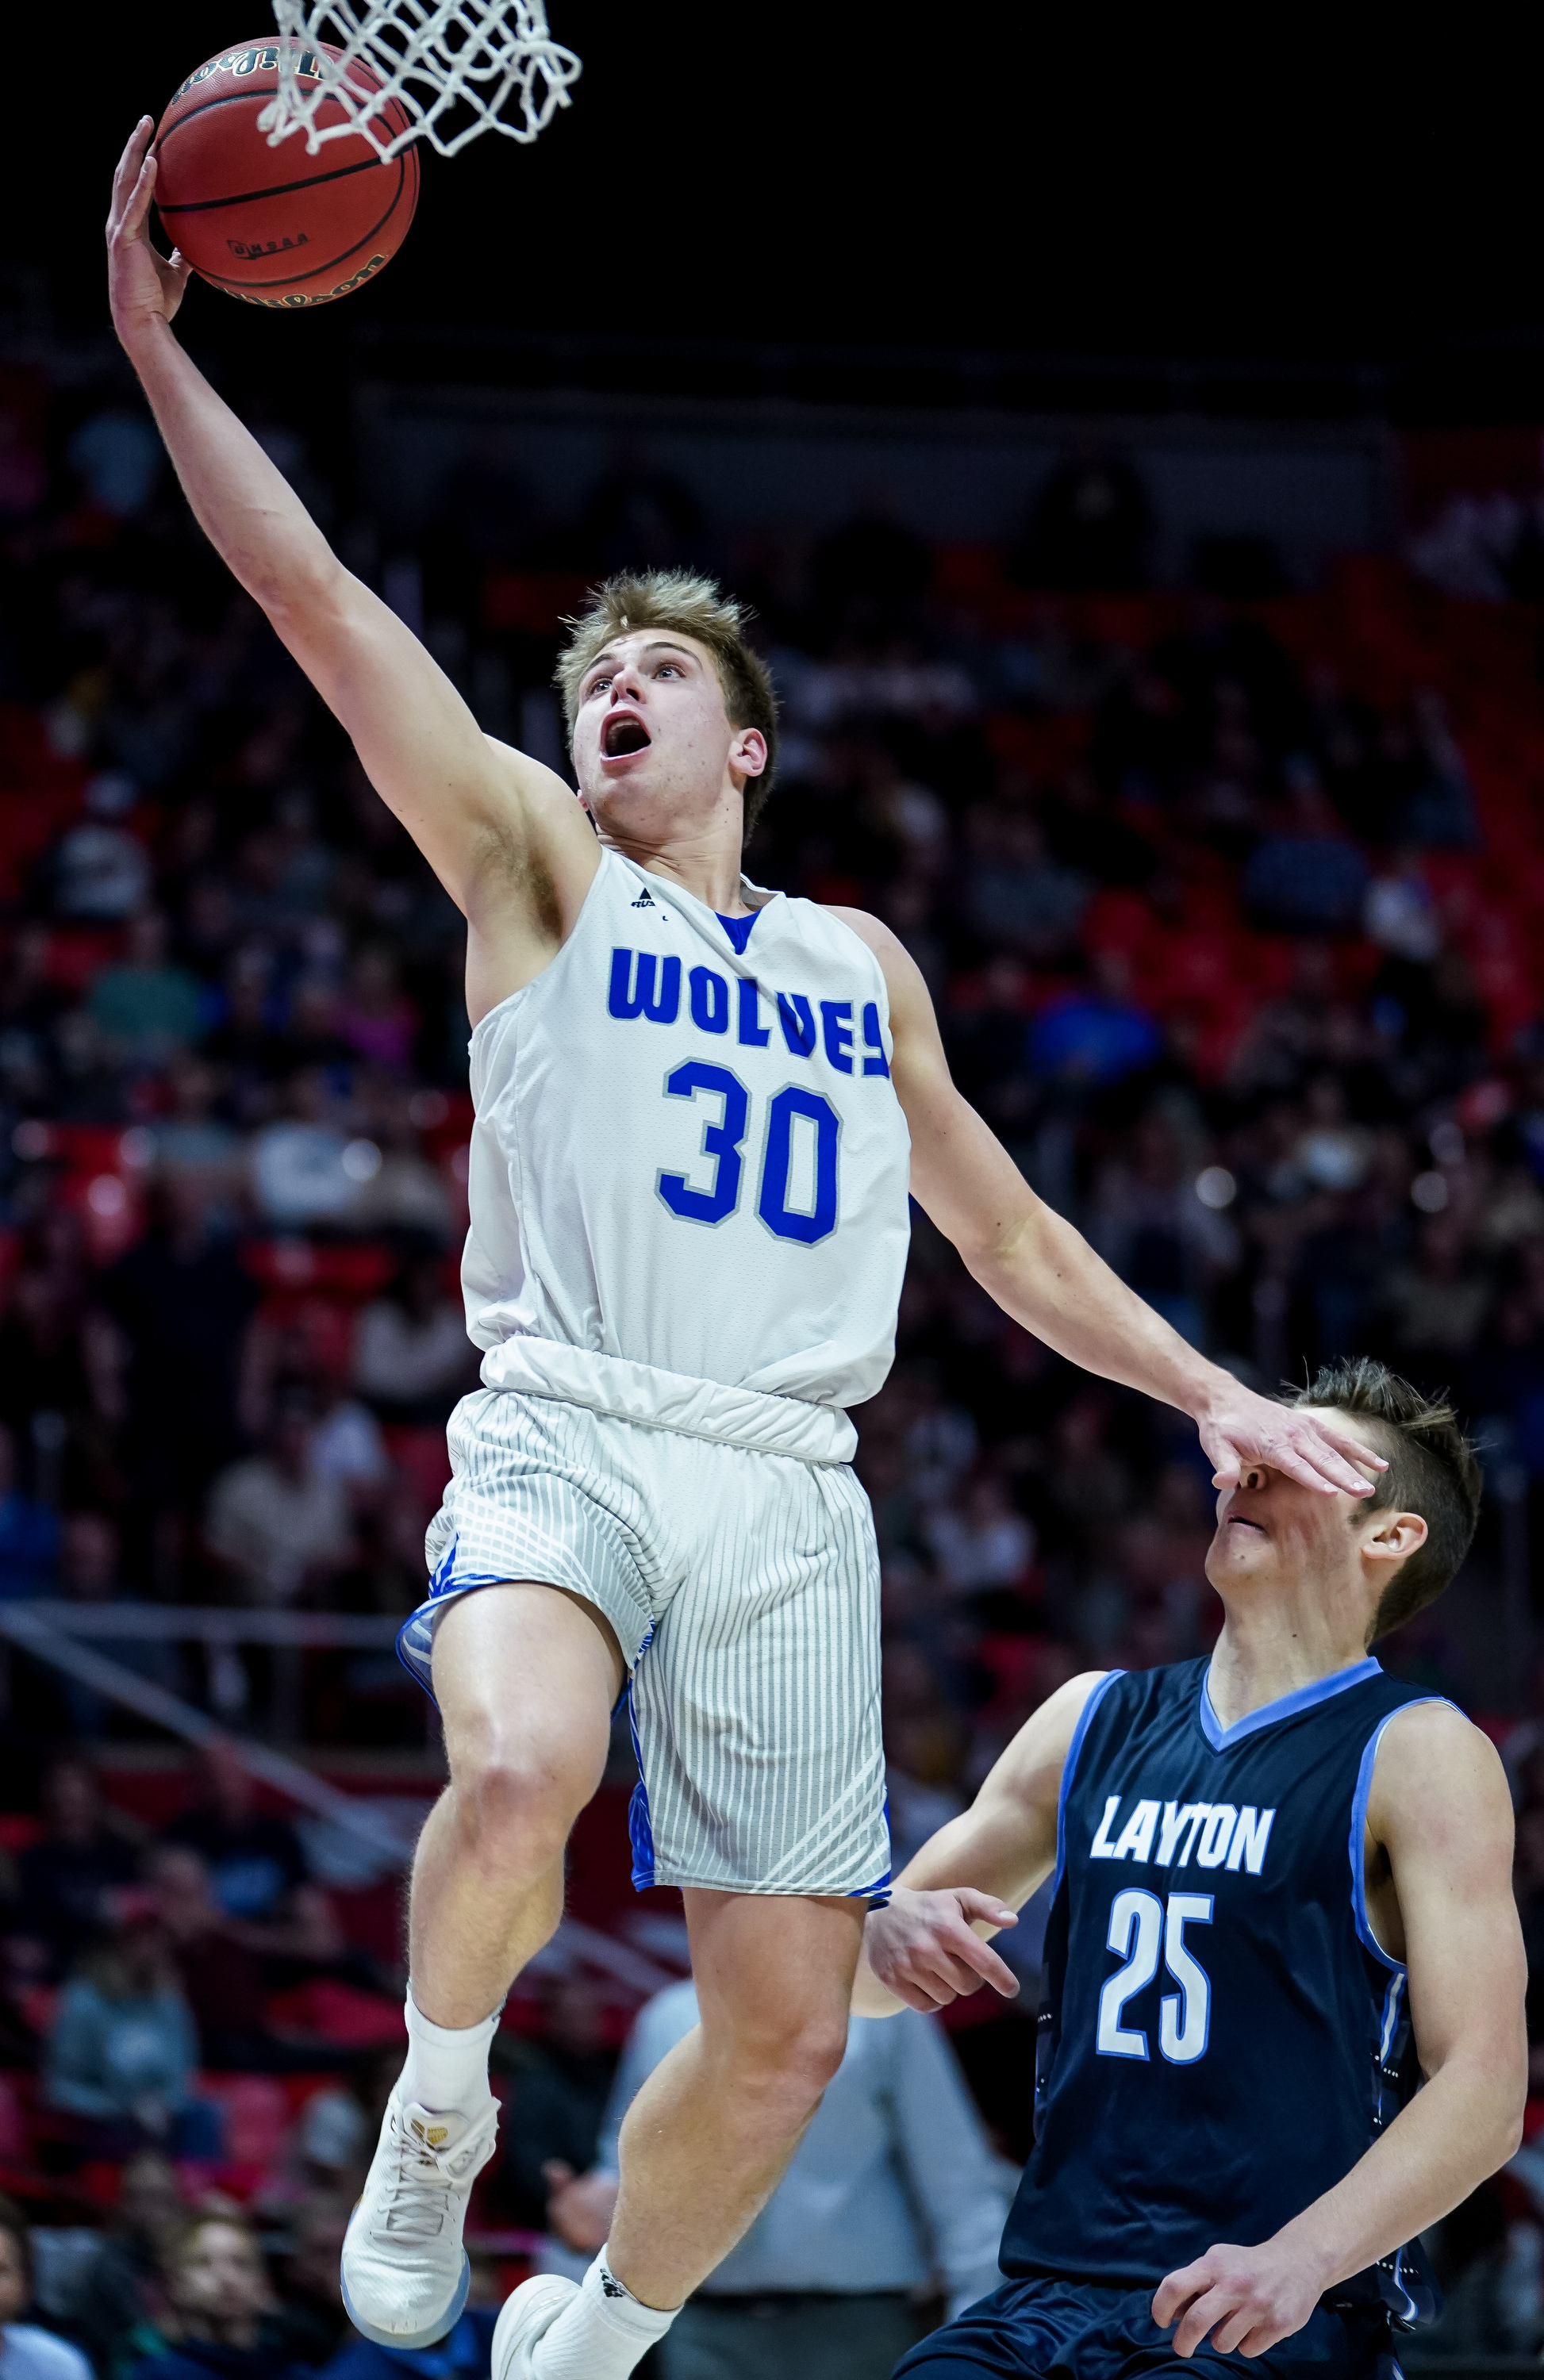 Fremont's Dallin Hall goes to the hoop ahead of Layton's Boston Painter in a 6A boys basketball semifinal game at the Huntsman Center in Salt Lake City on Friday, Feb. 28, 2020.